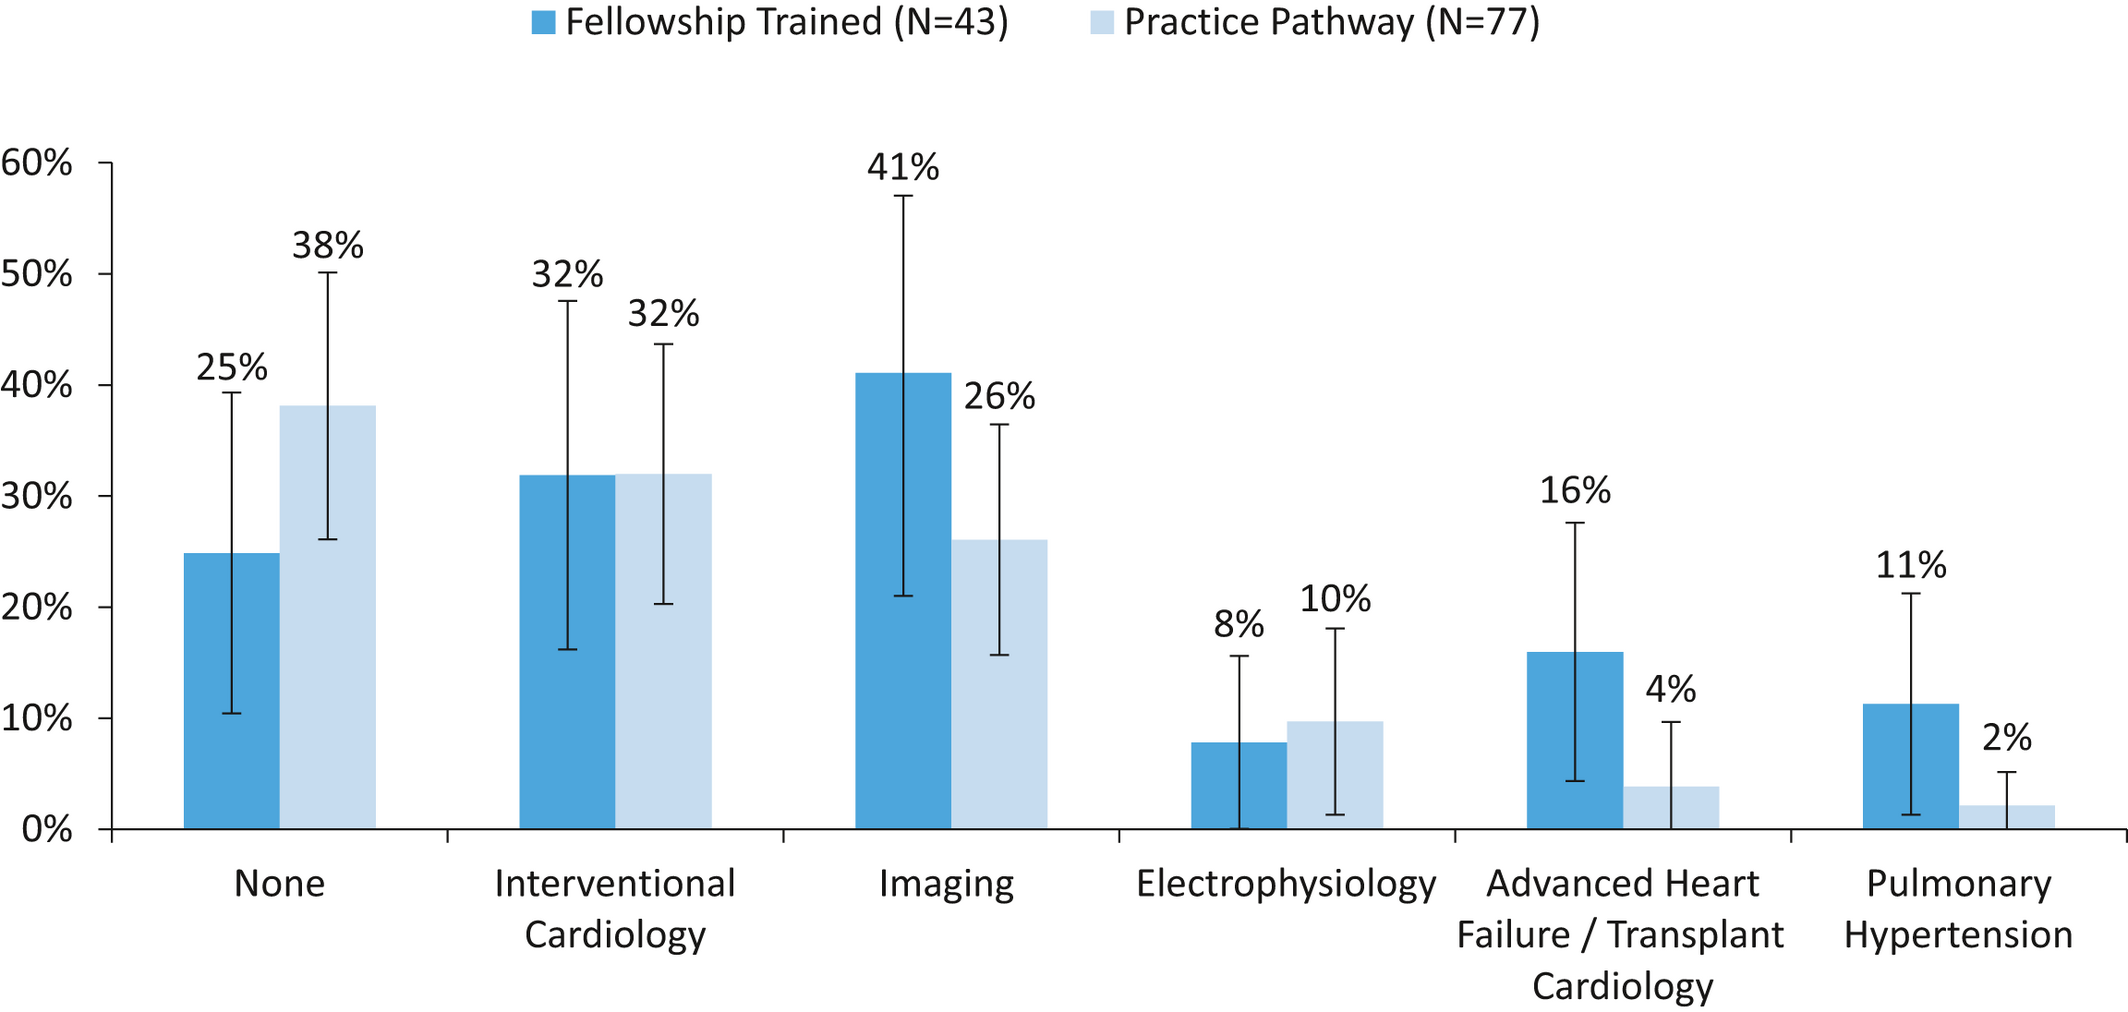 Role of Critical Care Medicine Training in the